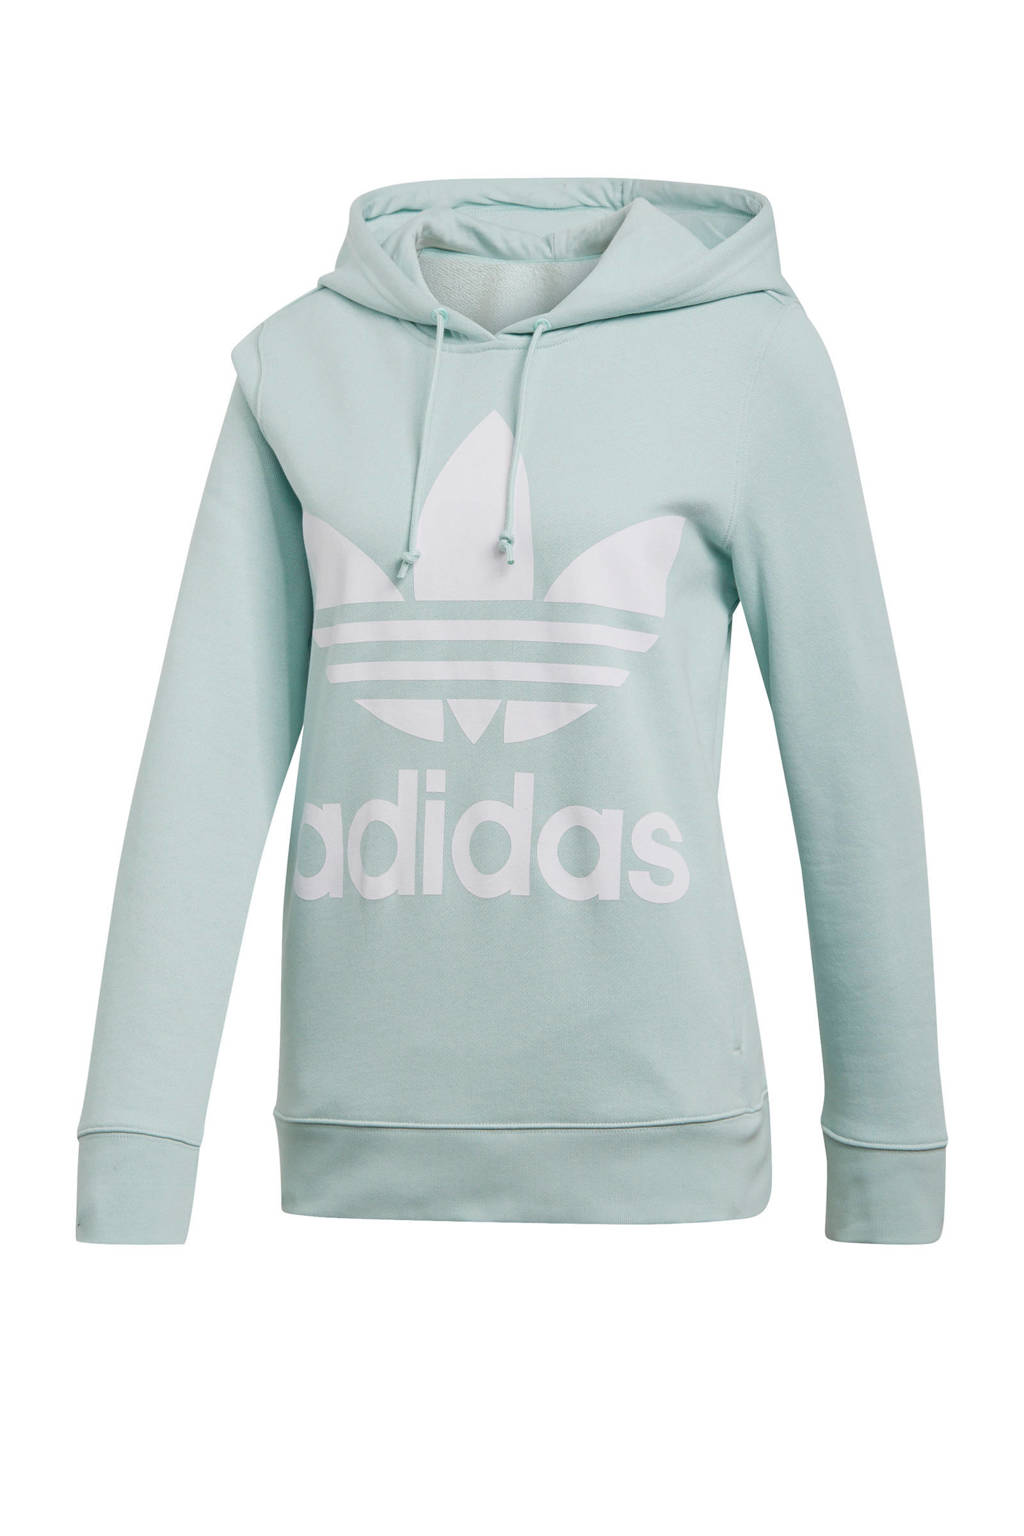 adidas Originals sweater lichtblauw, Lichtblauw/wit